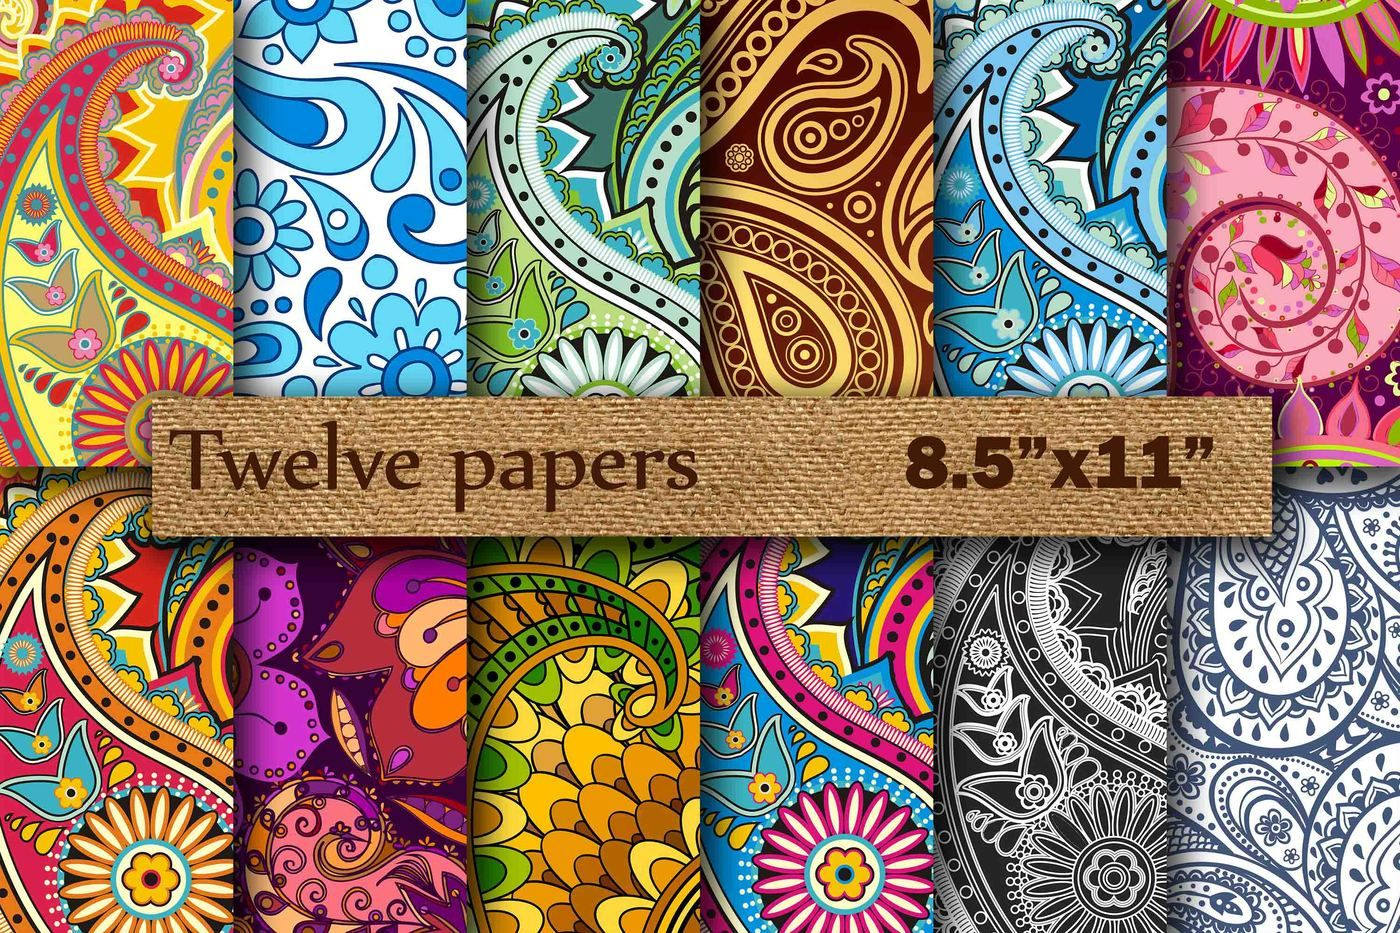 Paisley Digital 8 5 By Twelvepapers Thehungryjpeg Com